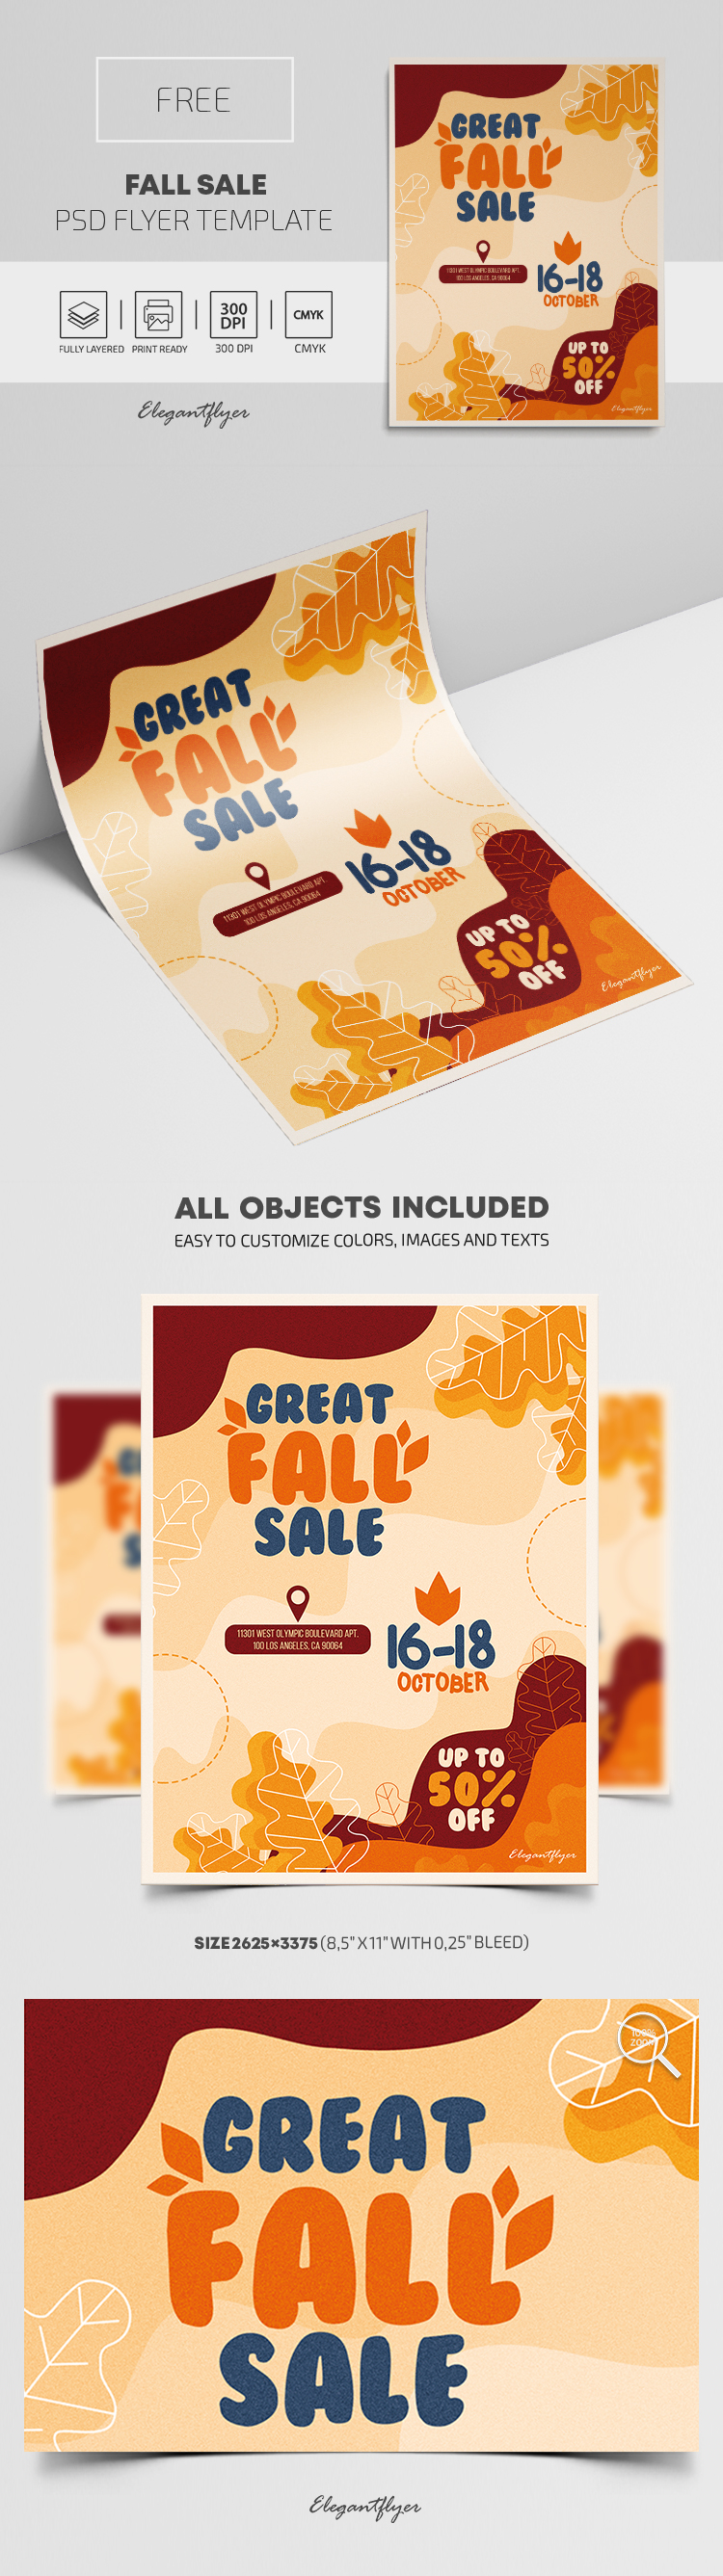 Fall Sale – Free Flyer PSD Template